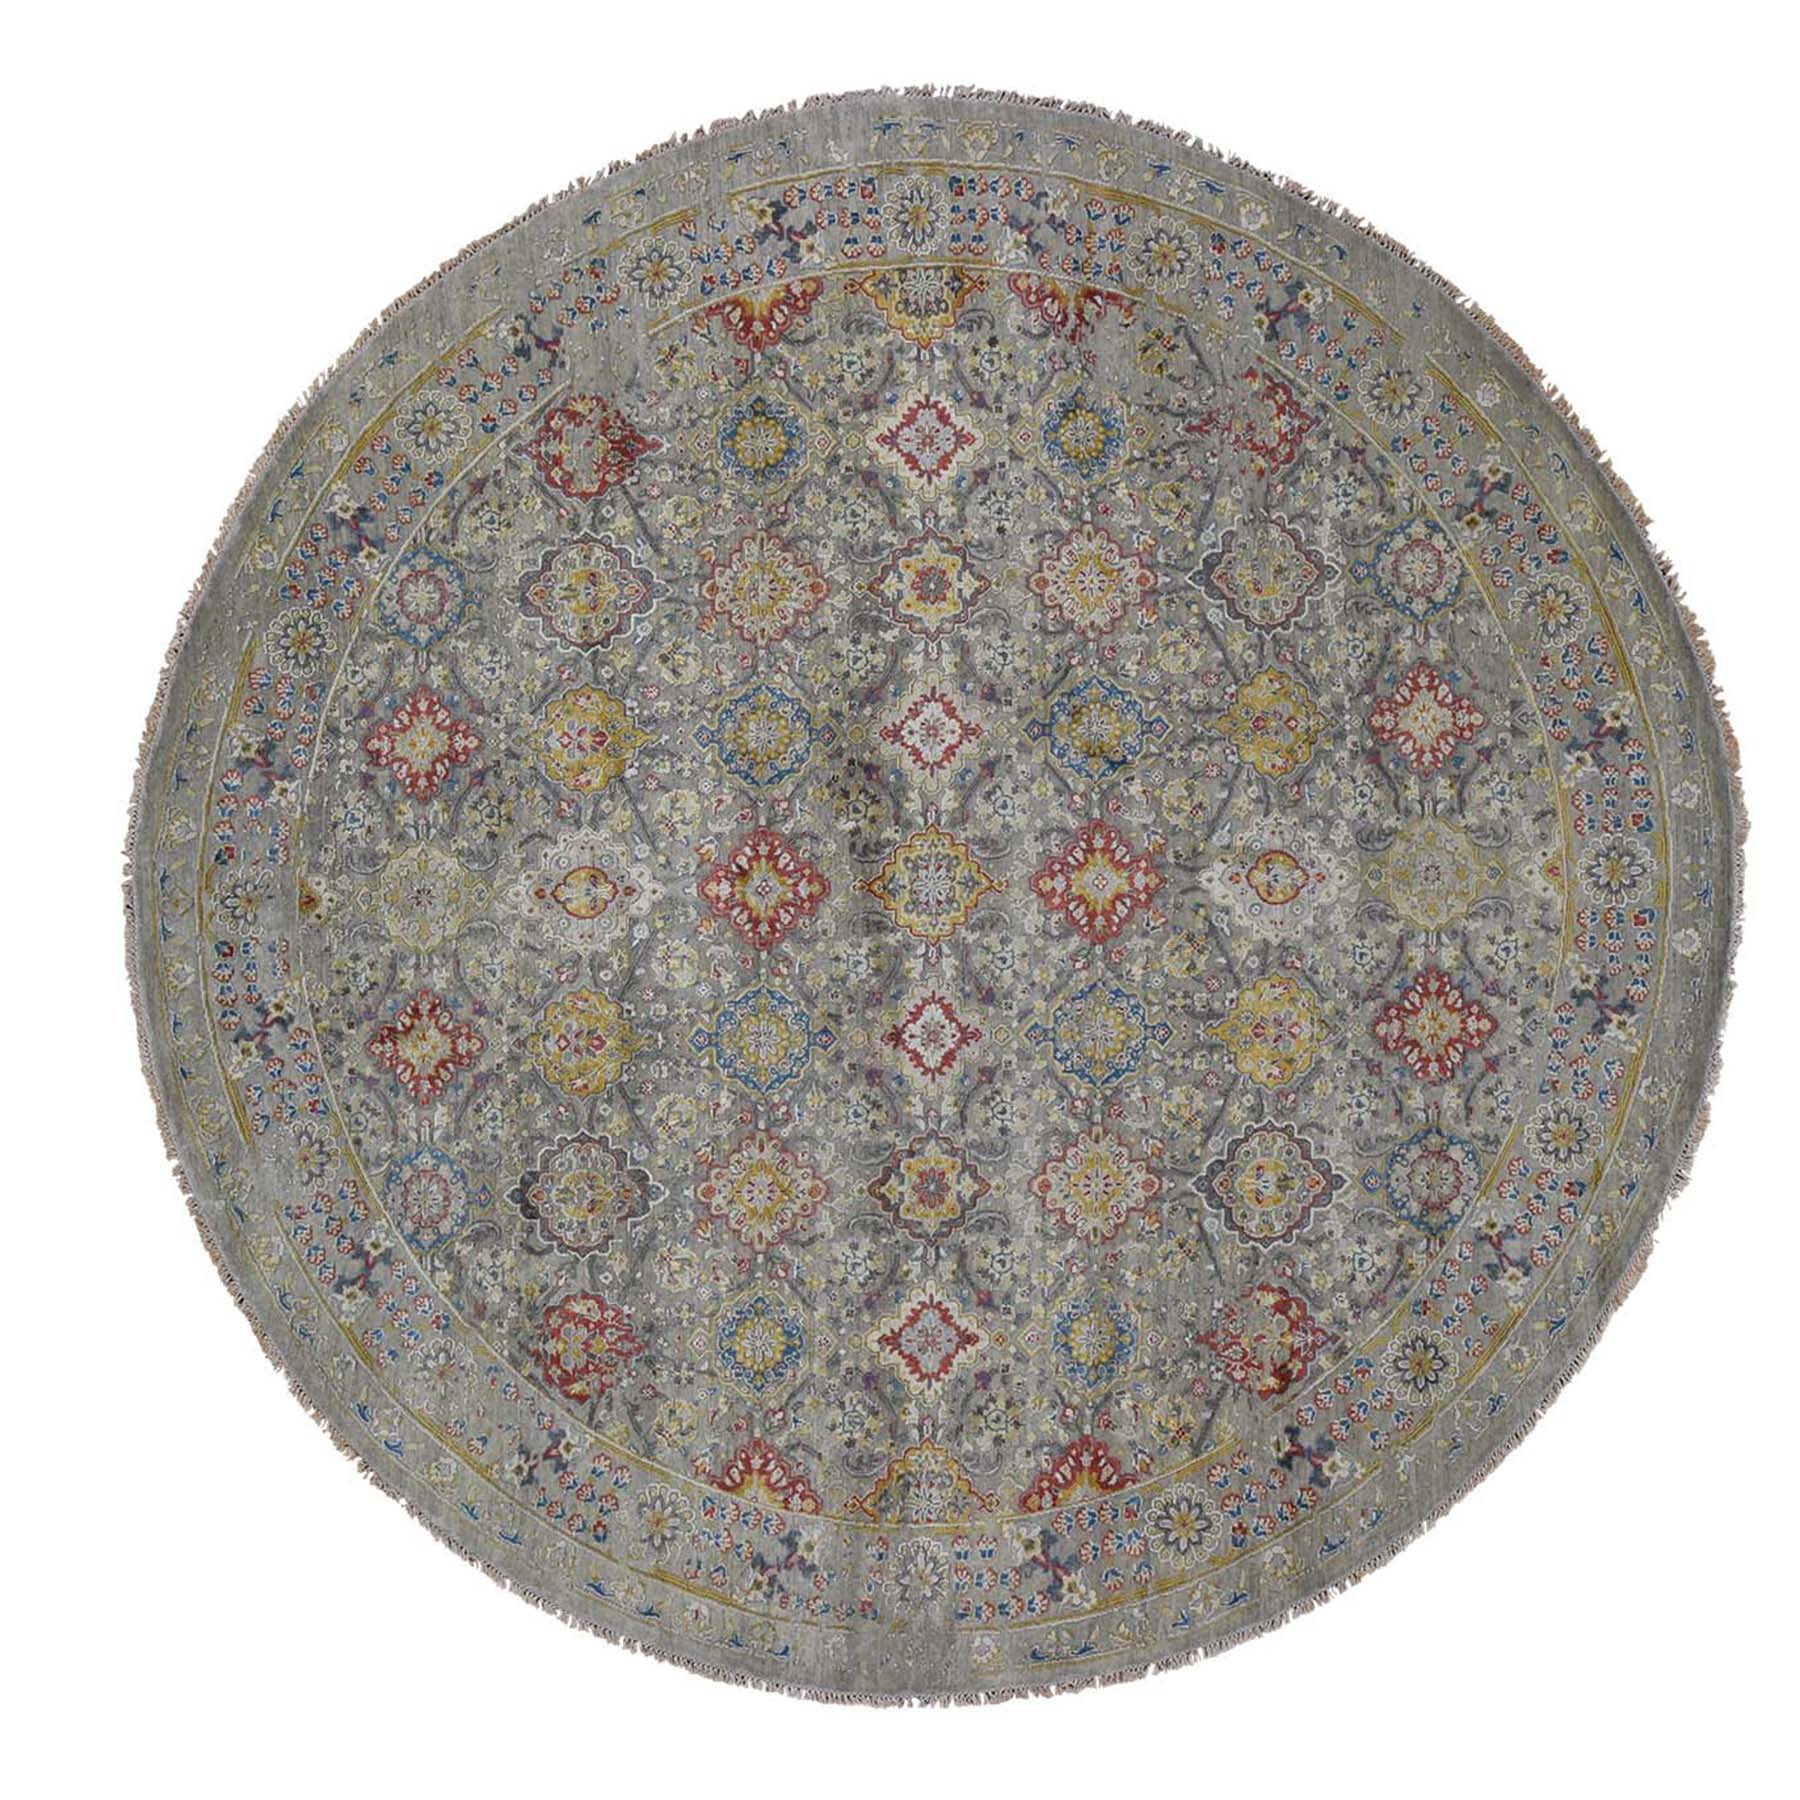 10'x10' THE SUNSET ROSETTES Pure Silk and Wool Hand-Knotted Oriental Round Rug